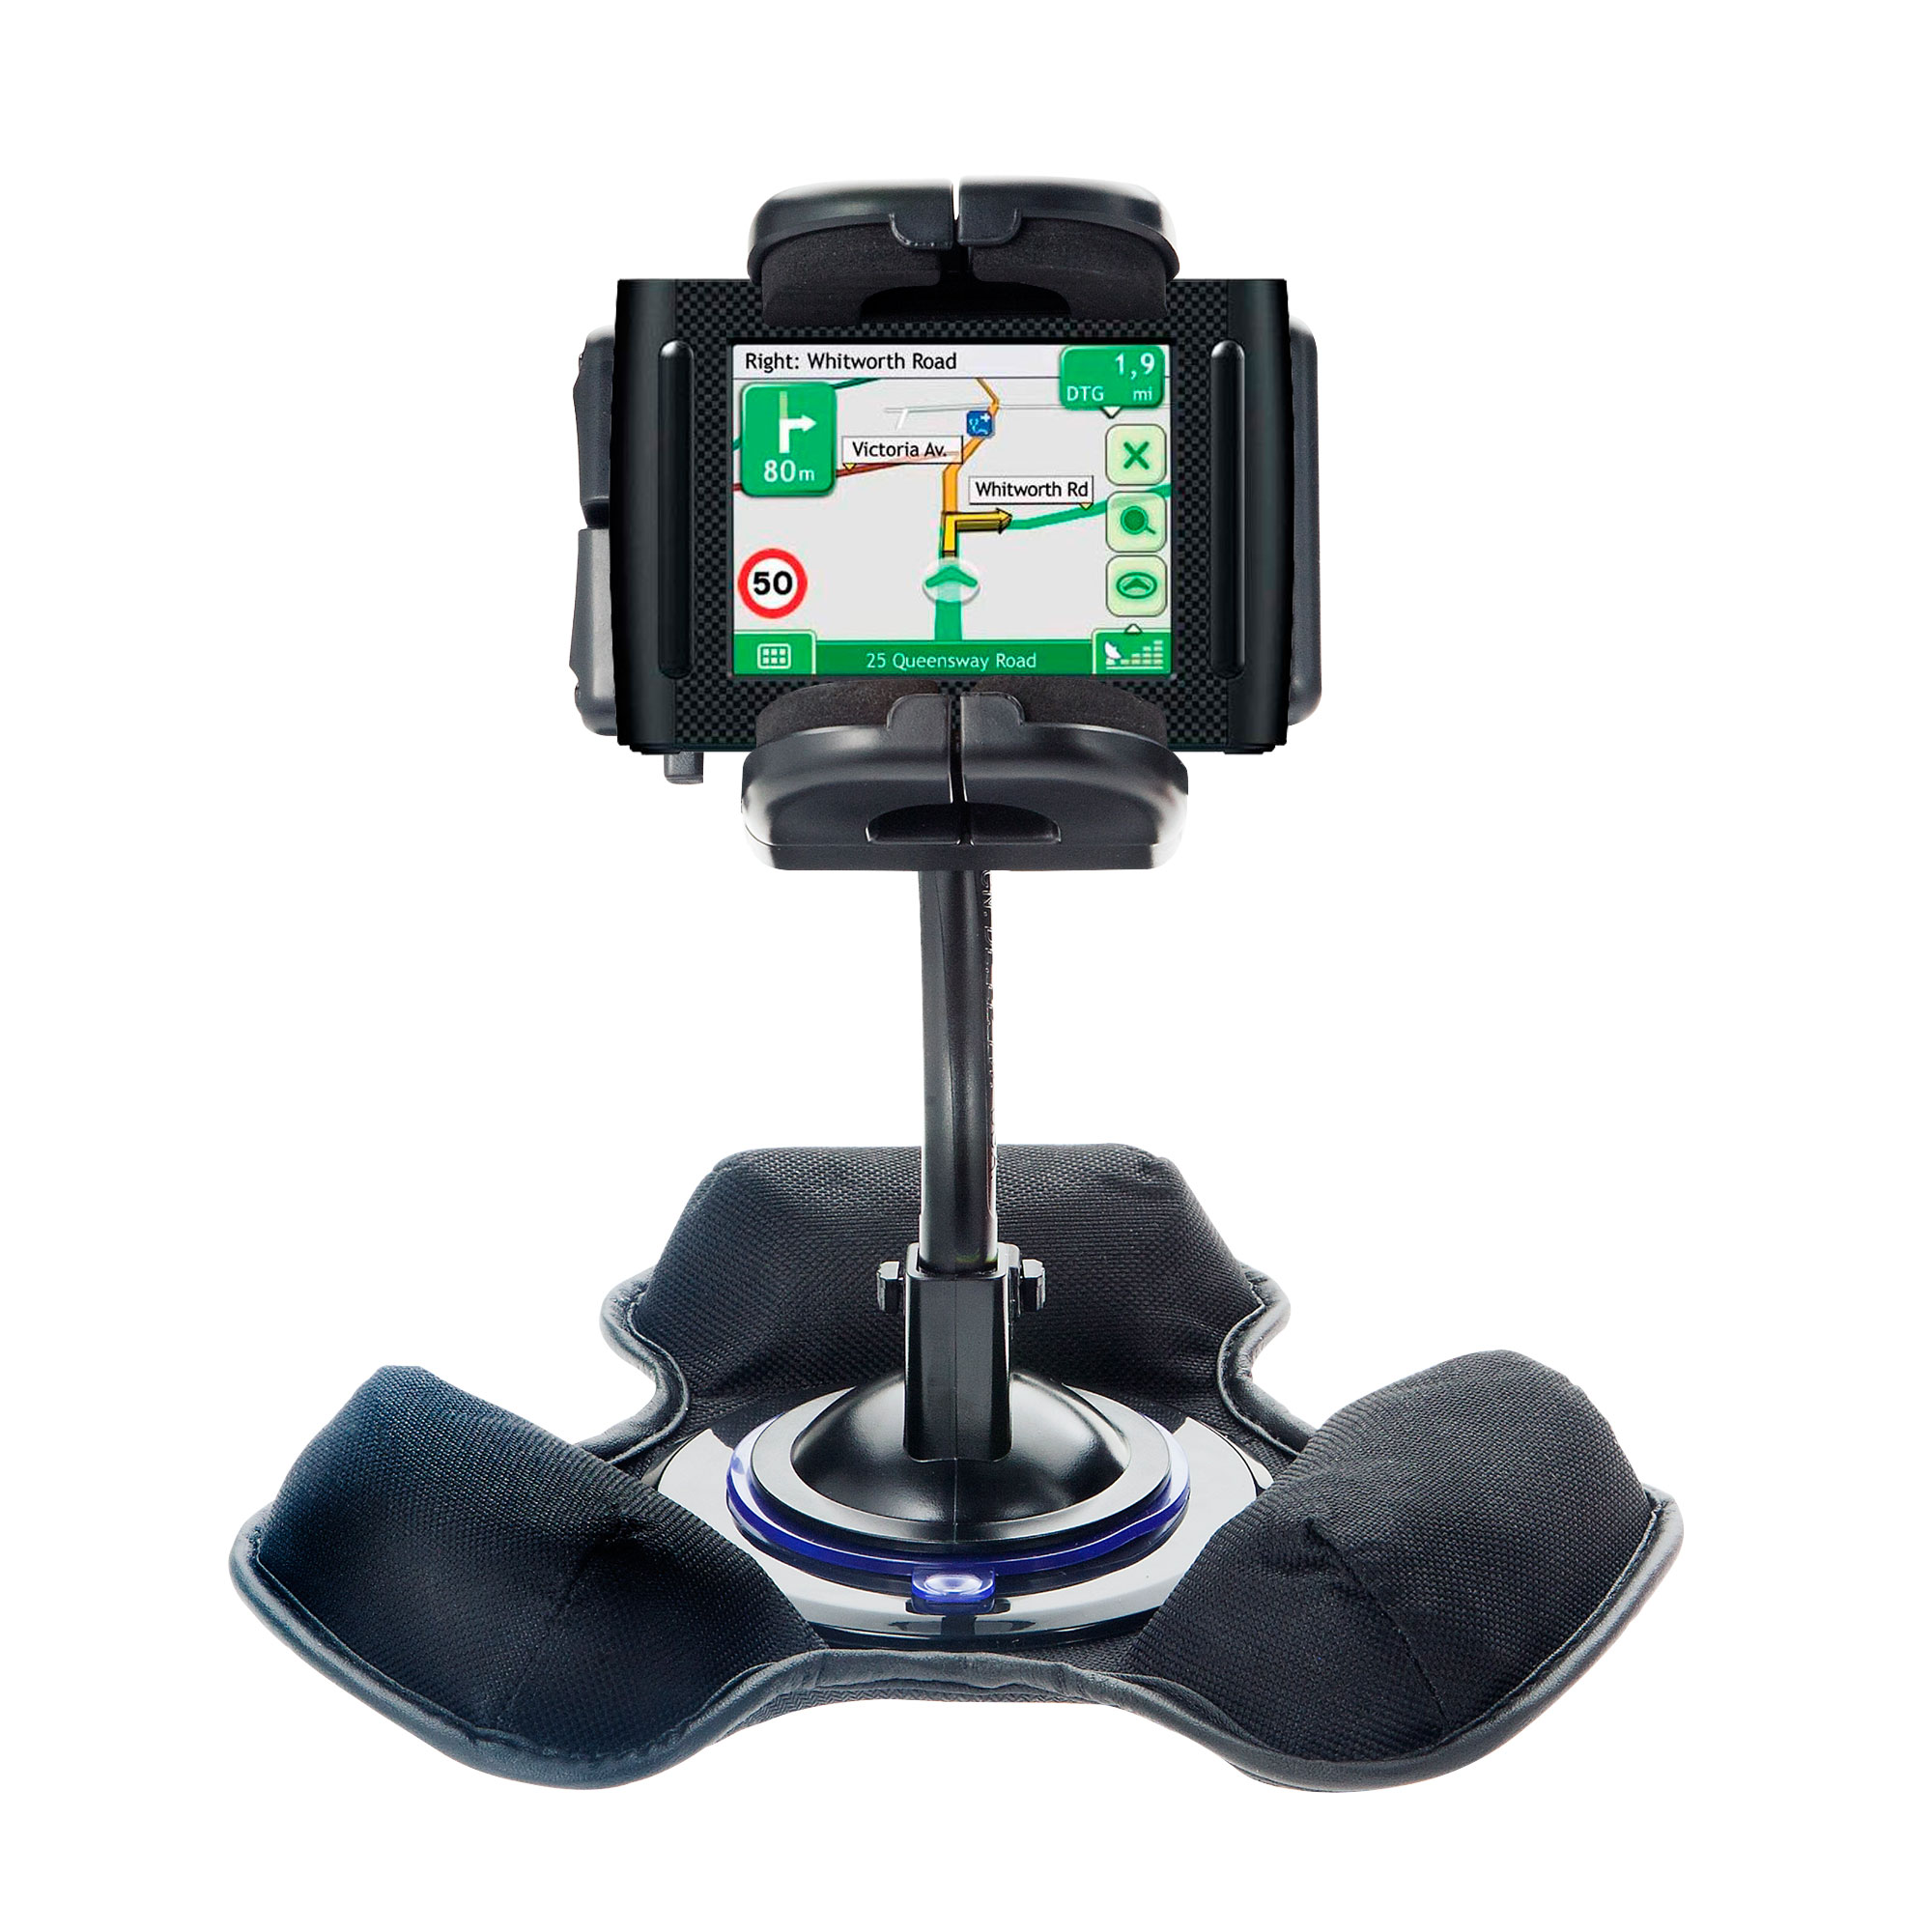 Car / Truck Vehicle Holder Mounting System for Navman F35 Includes Unique Flexible Windshield Suction and Universal Dashboard Mount Options